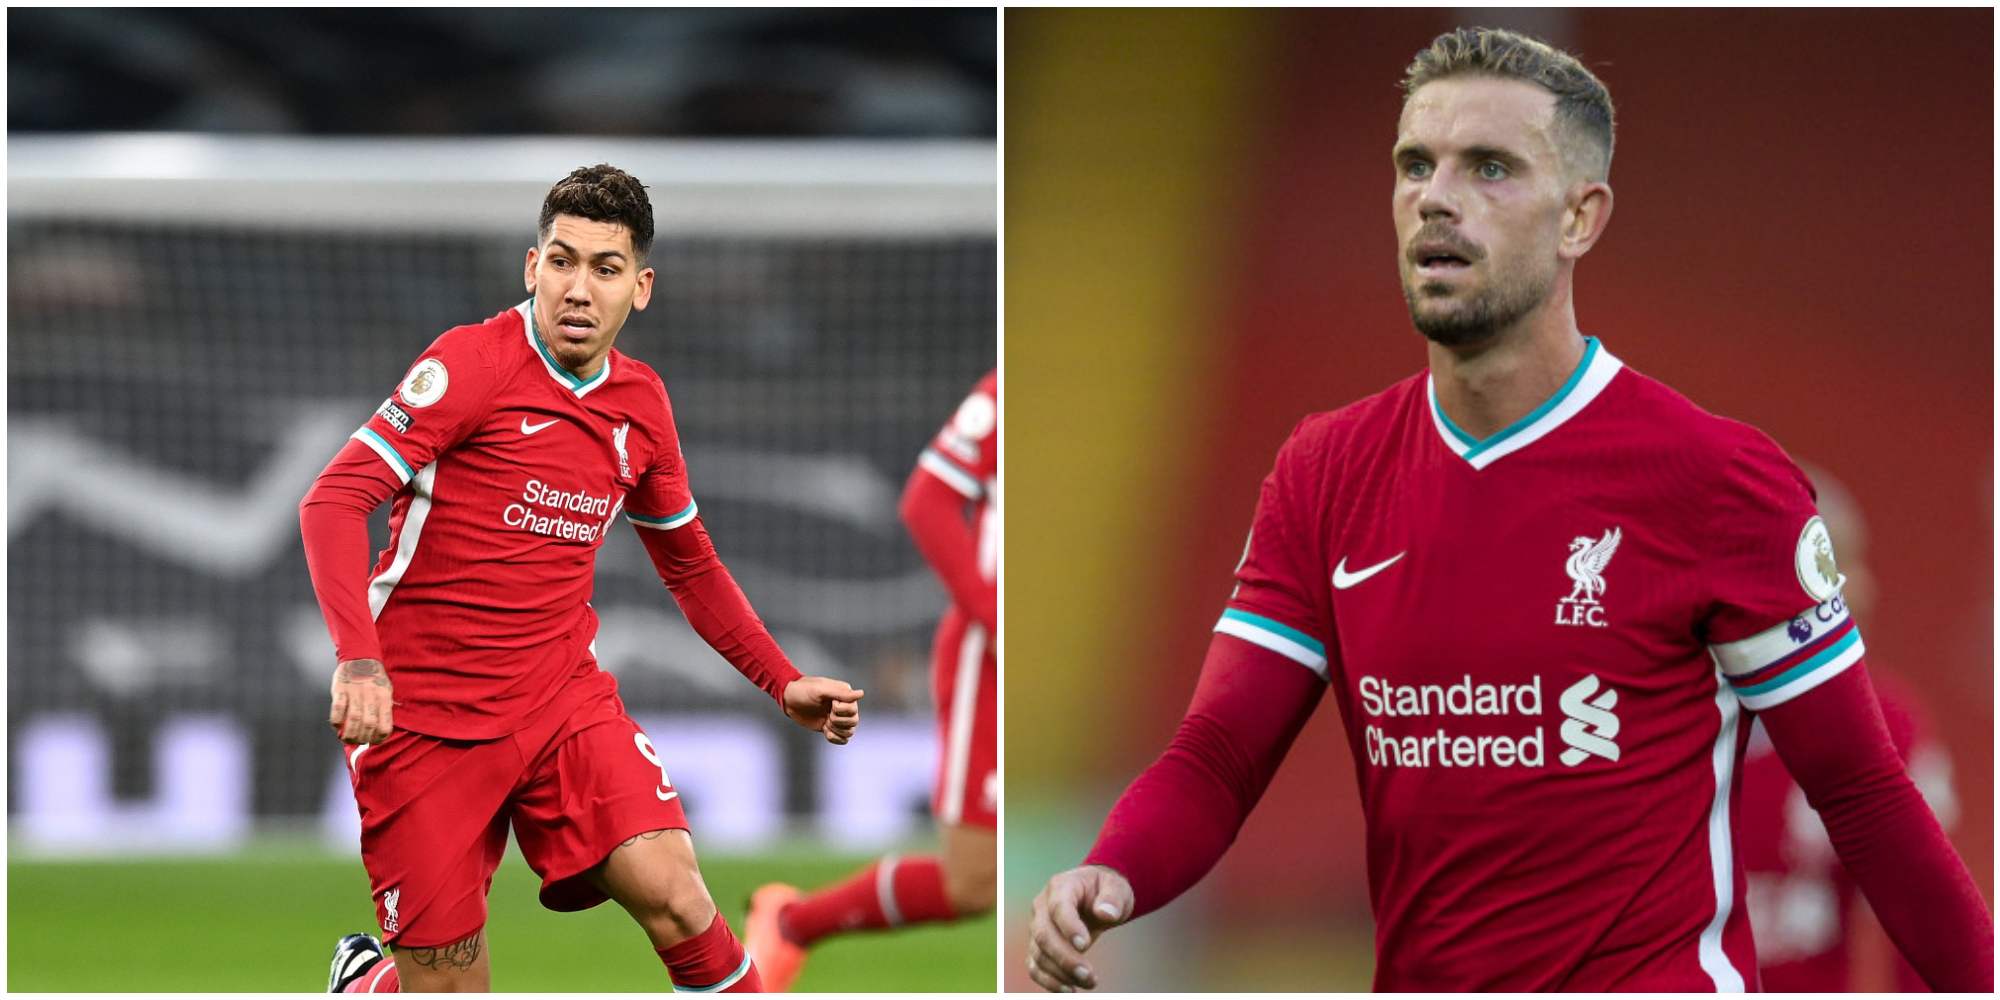 Klopp confirms injury boost for LFC as Firmino back; some hope for Henderson Euros availability